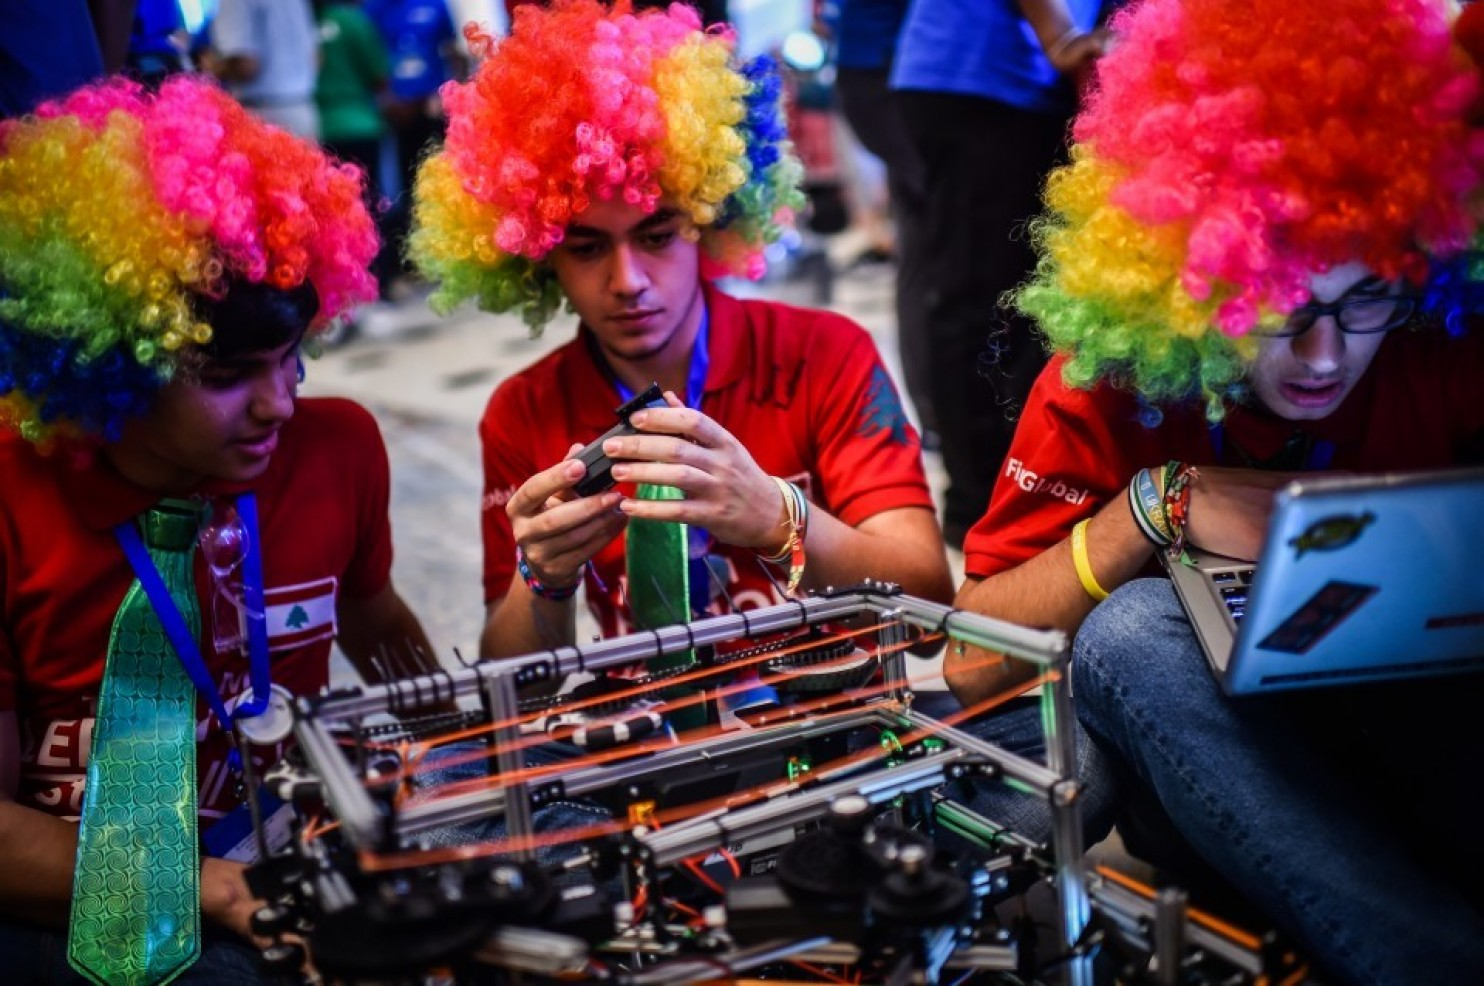 Team Lebanon member, from left, Shadi El-Aridi, Wissam Malaeb and Kareem Kawtharani fix their robot during the FIRST Global Challenge, international annual robotics game on. (Photo by Salwan Georges/The Washington Post)